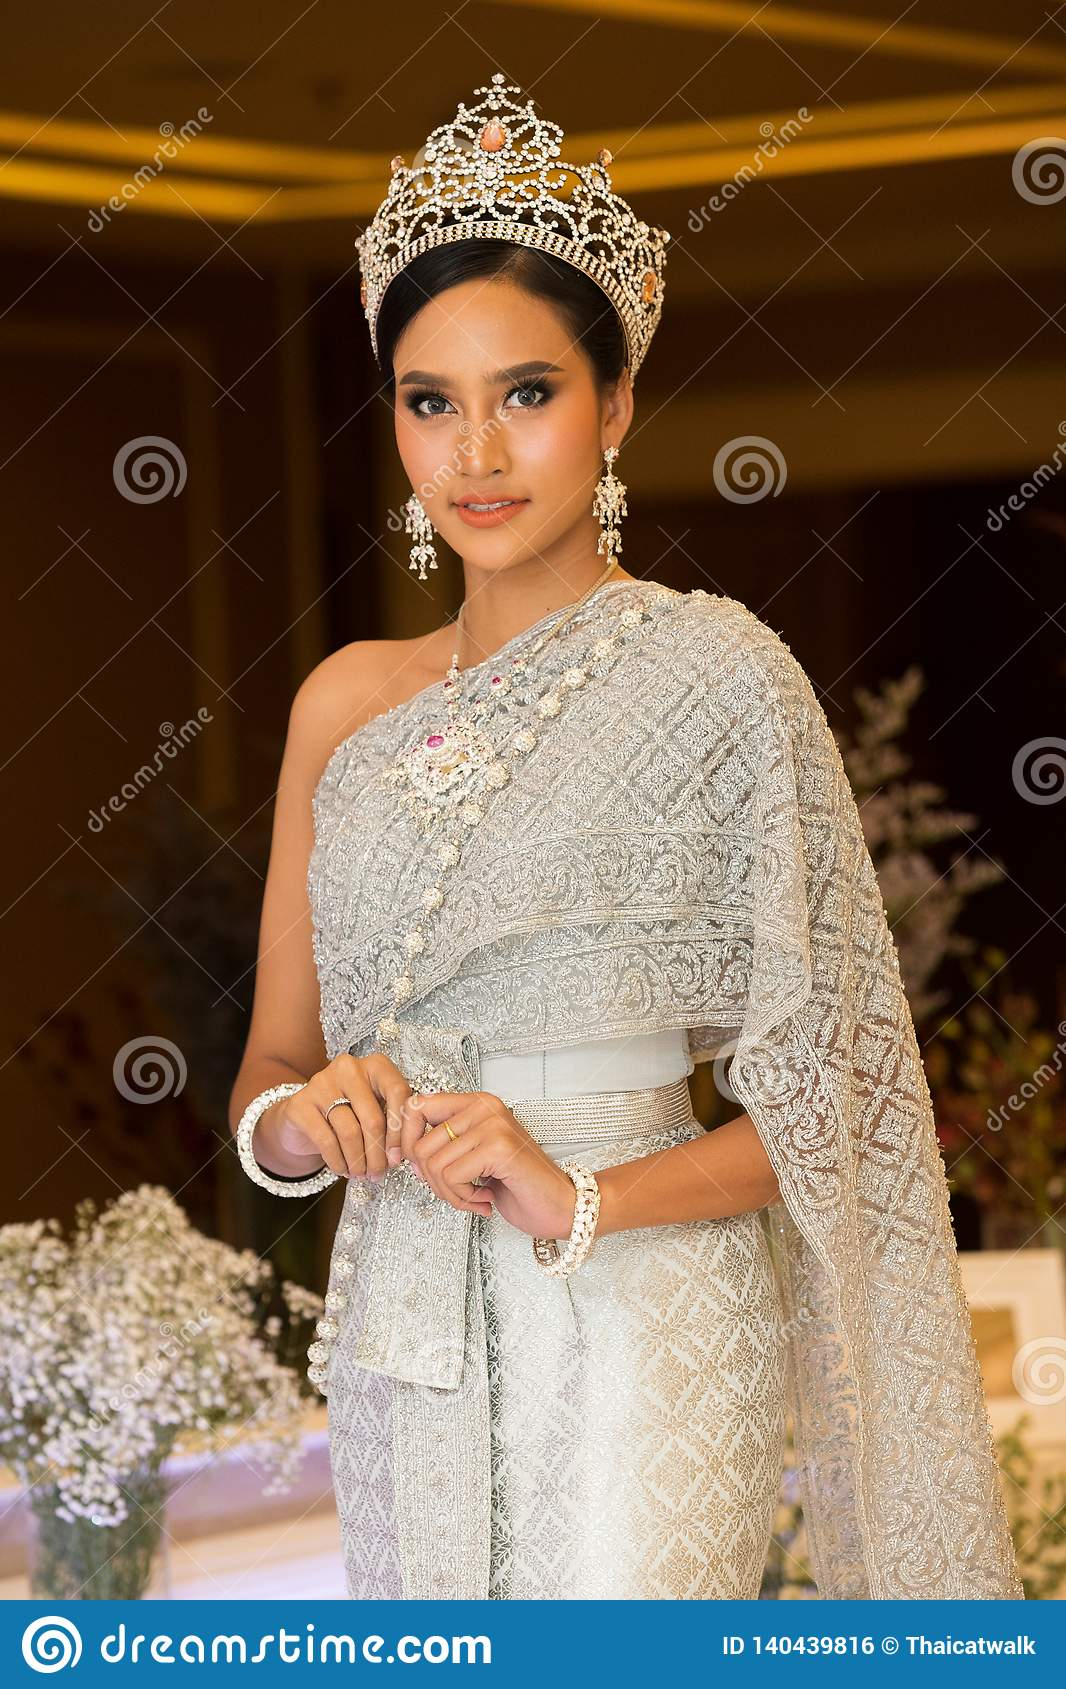 dc9502f85 Fashion Model In Thai Traditional Costume Wedding Dress Stock Photo ...